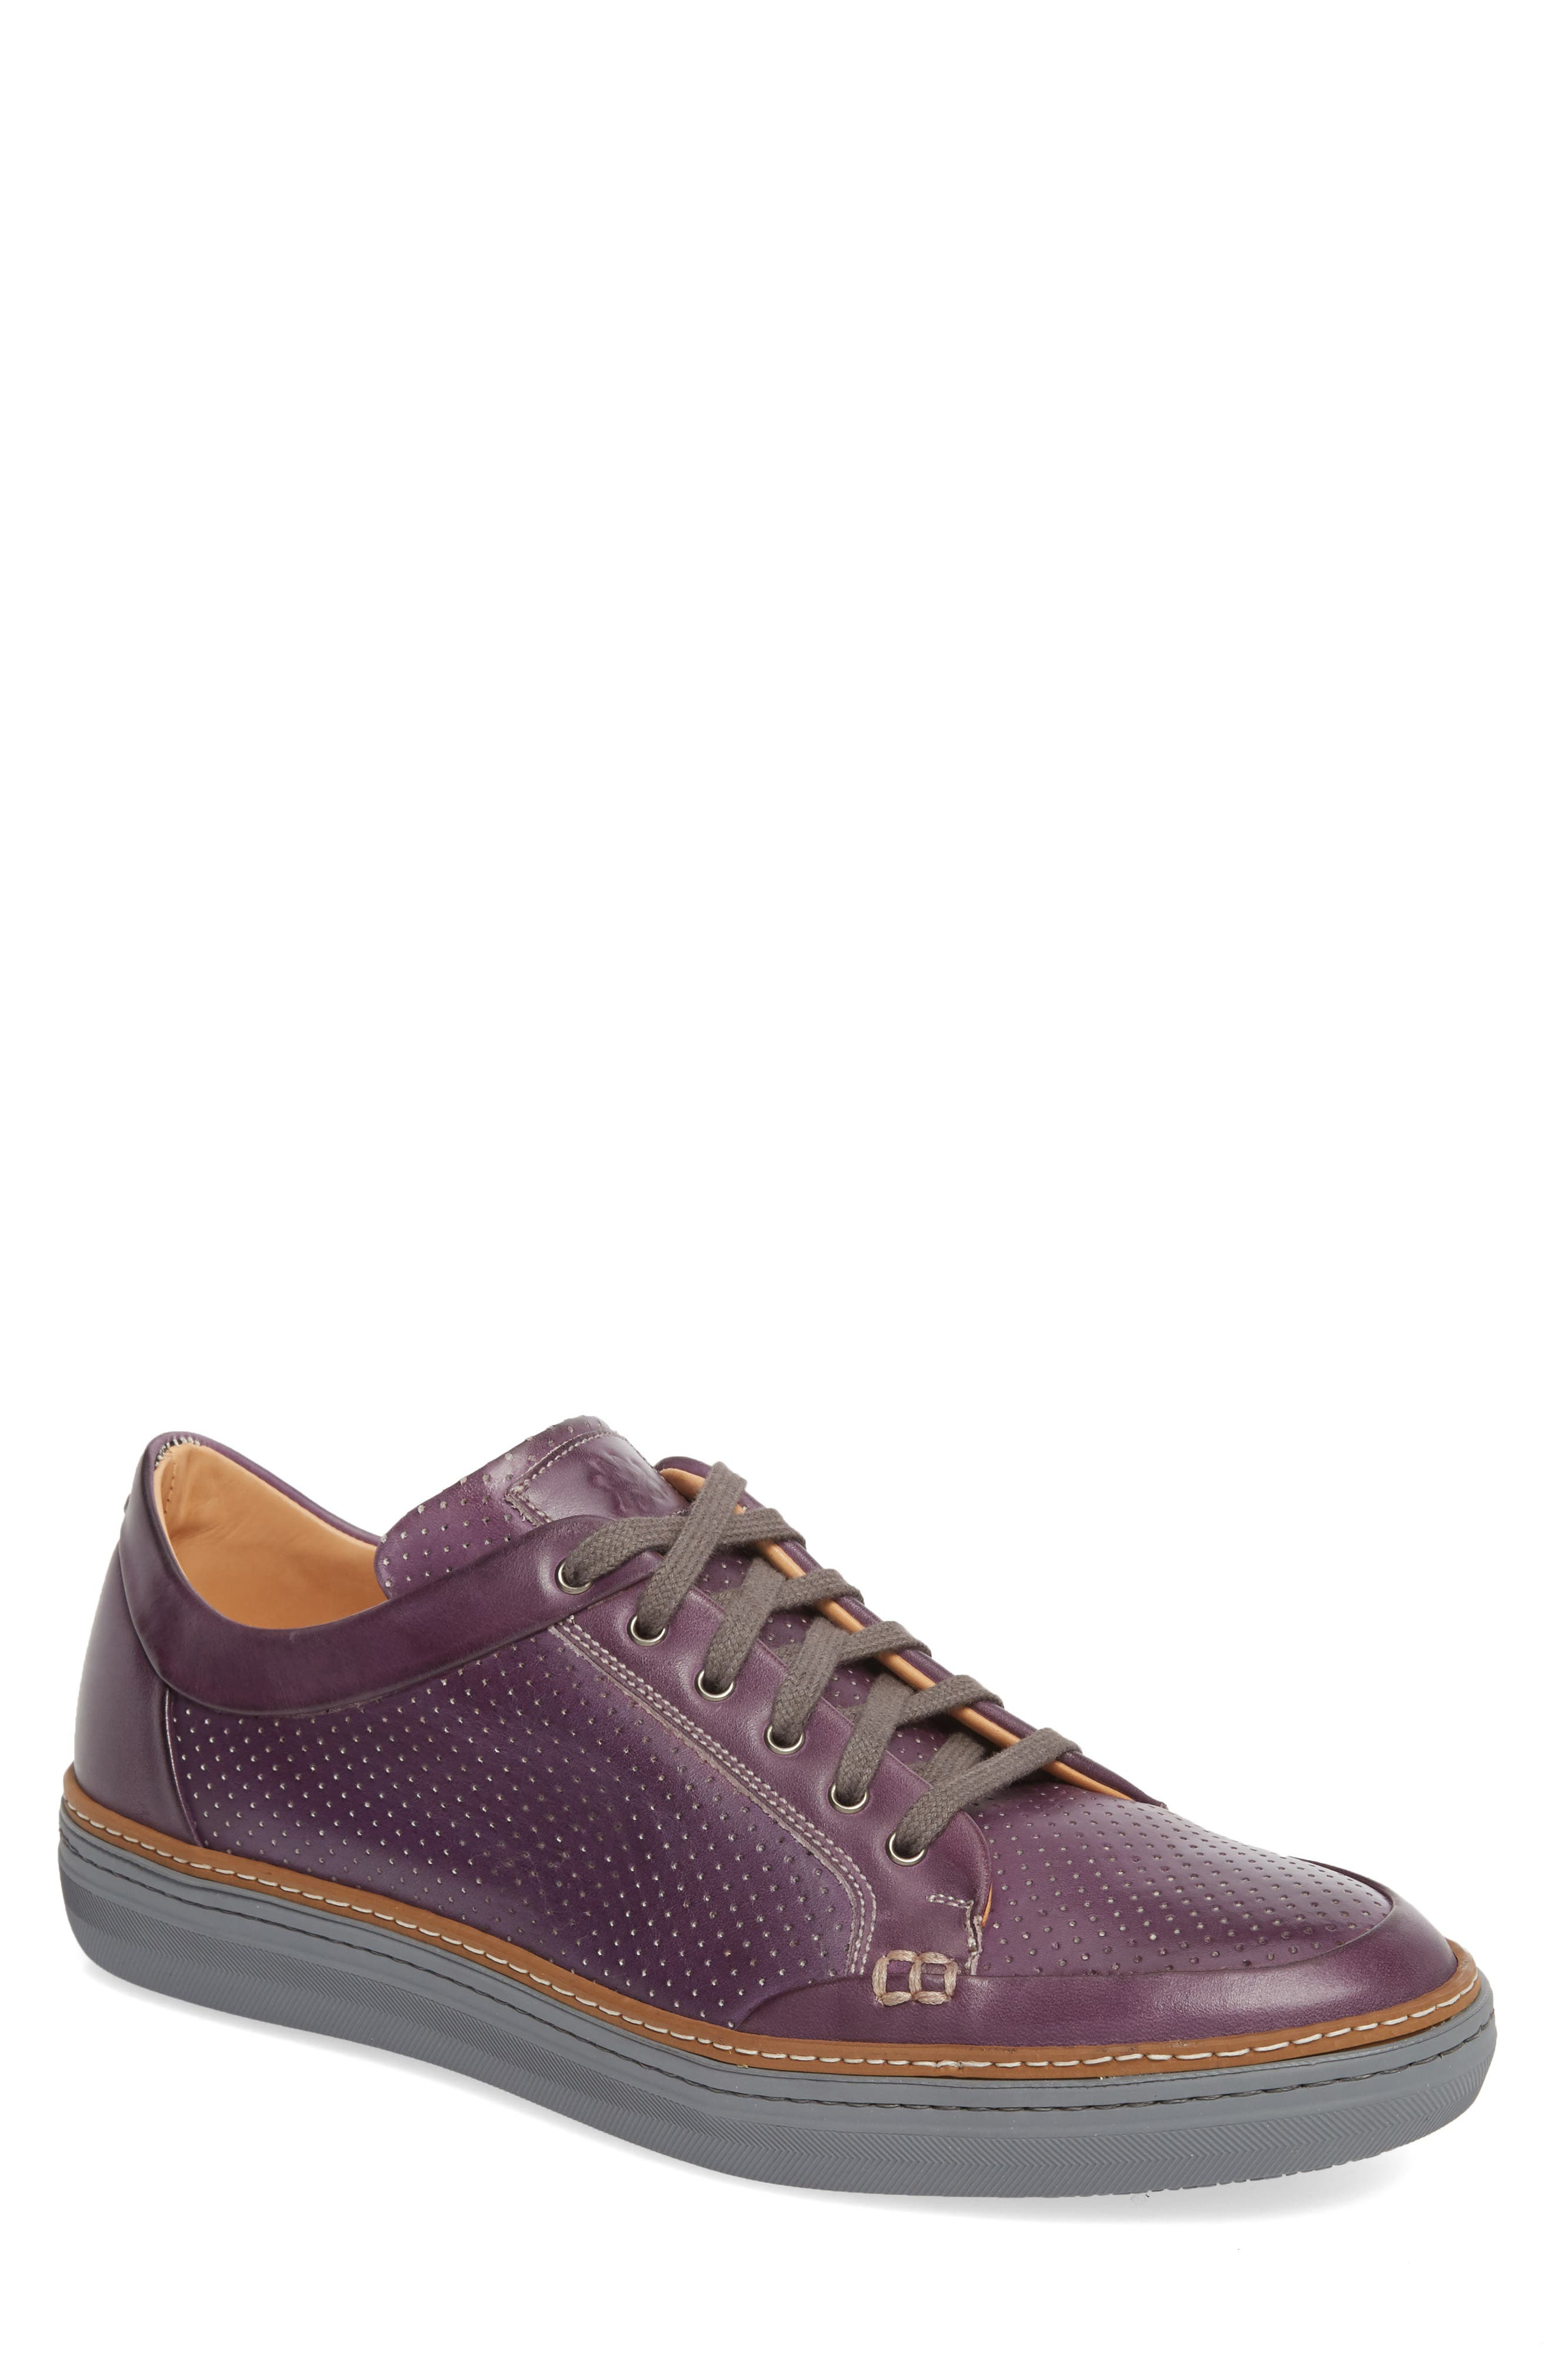 Ceres Perforated Low Top Sneaker,                         Main,                         color, PURPLE LEATHER